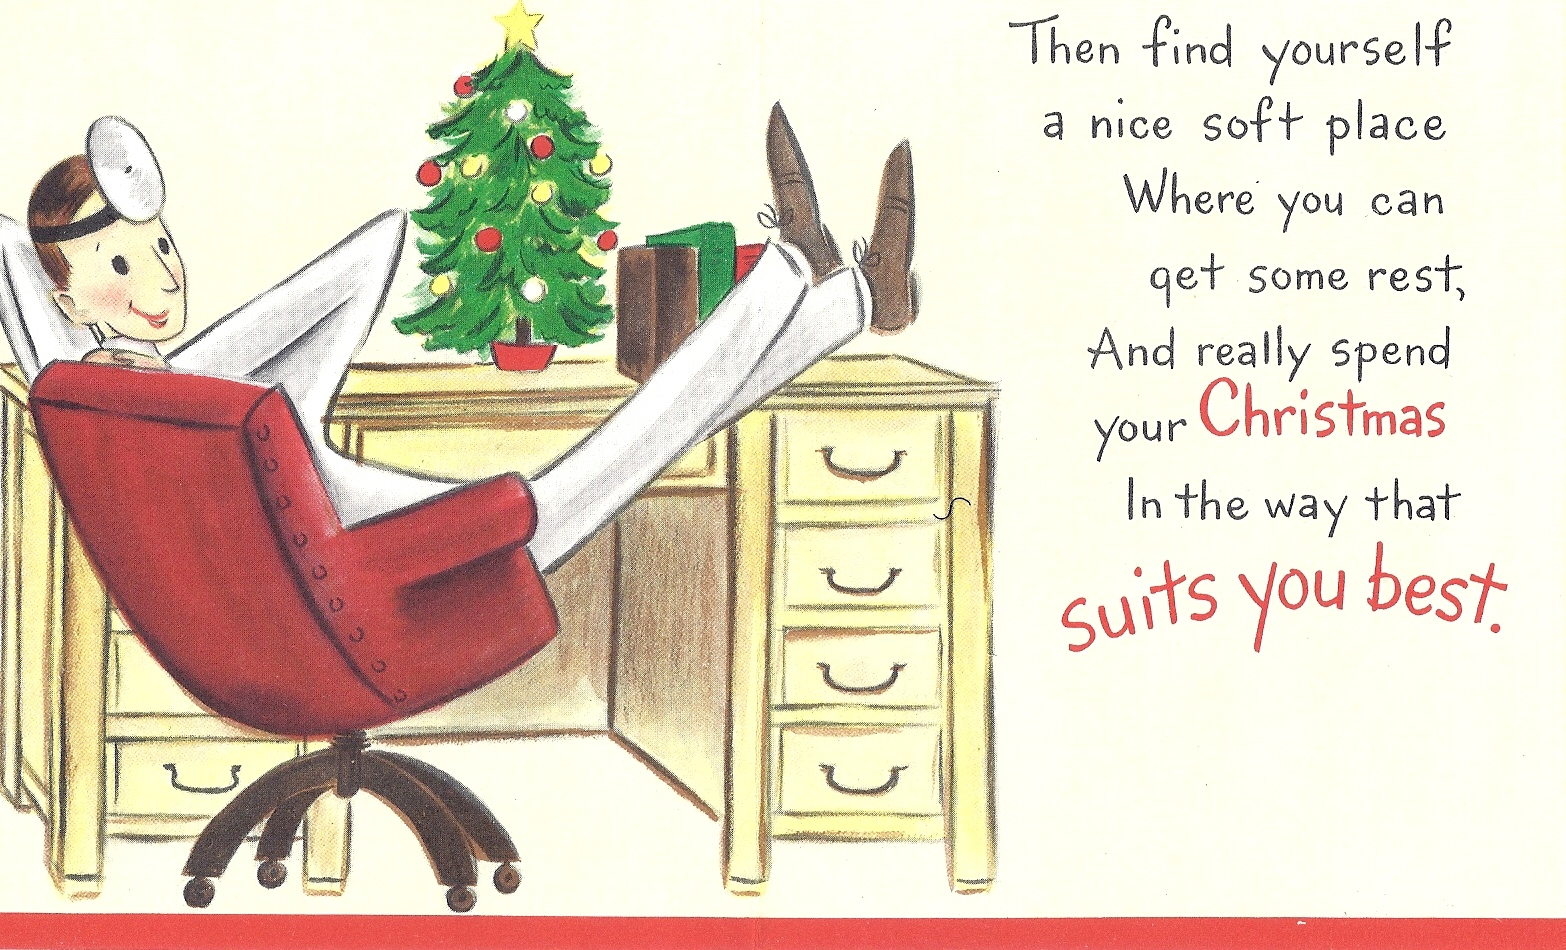 One of the many strange vintage Christmas cards found in our office cupboard!